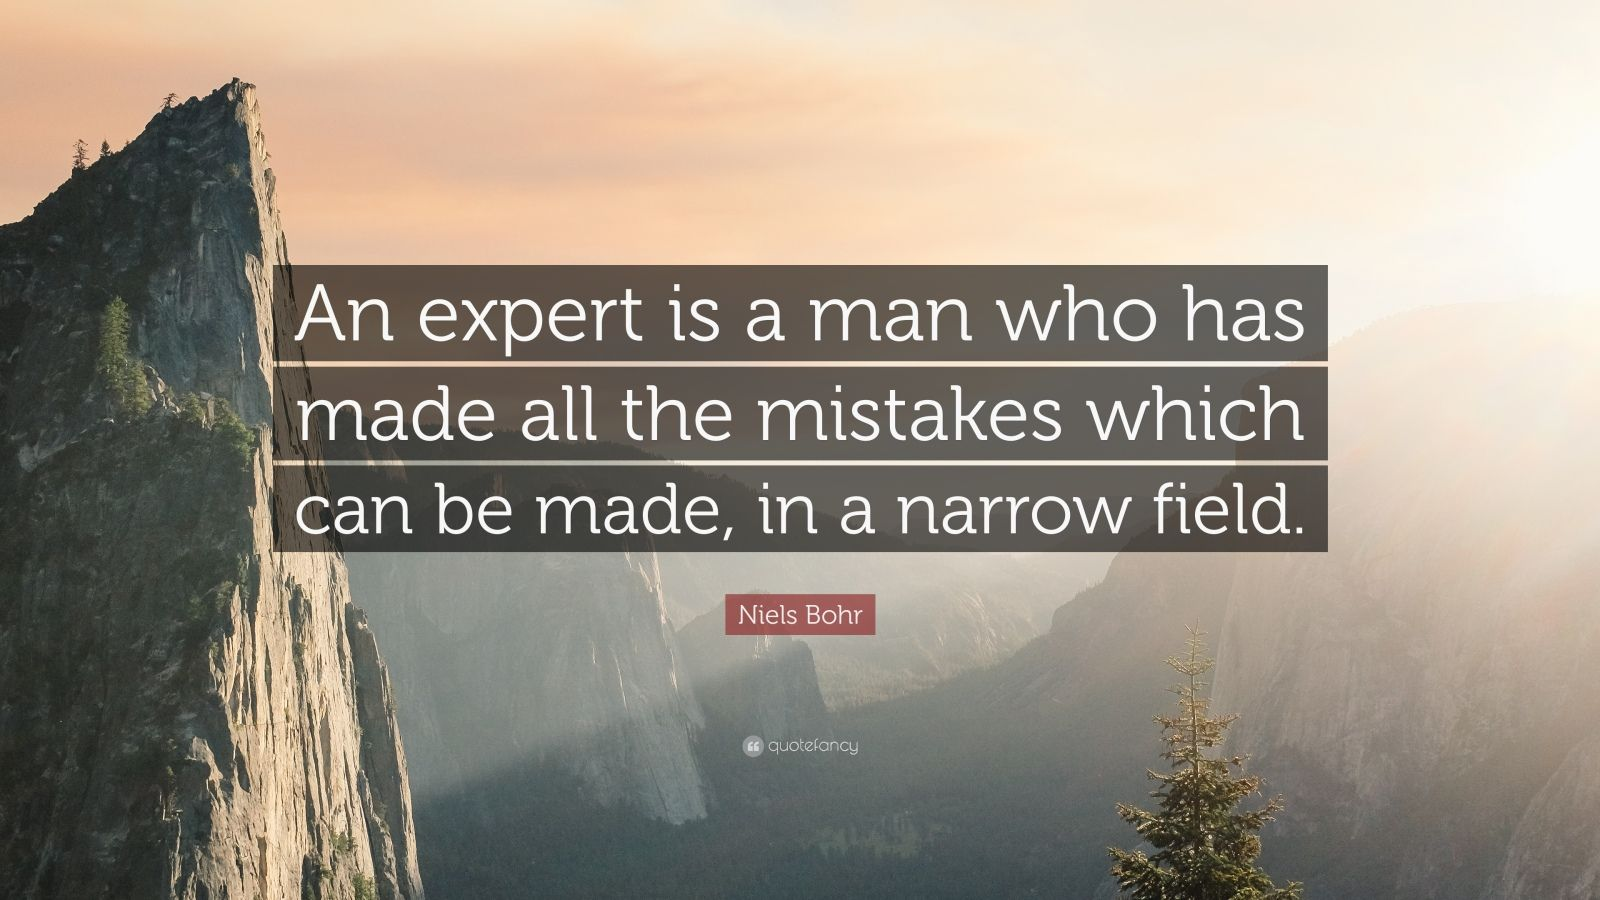 """Niels Bohr Quote: """"An expert is a man who has made all the mistakes which can be made, in a narrow field."""""""